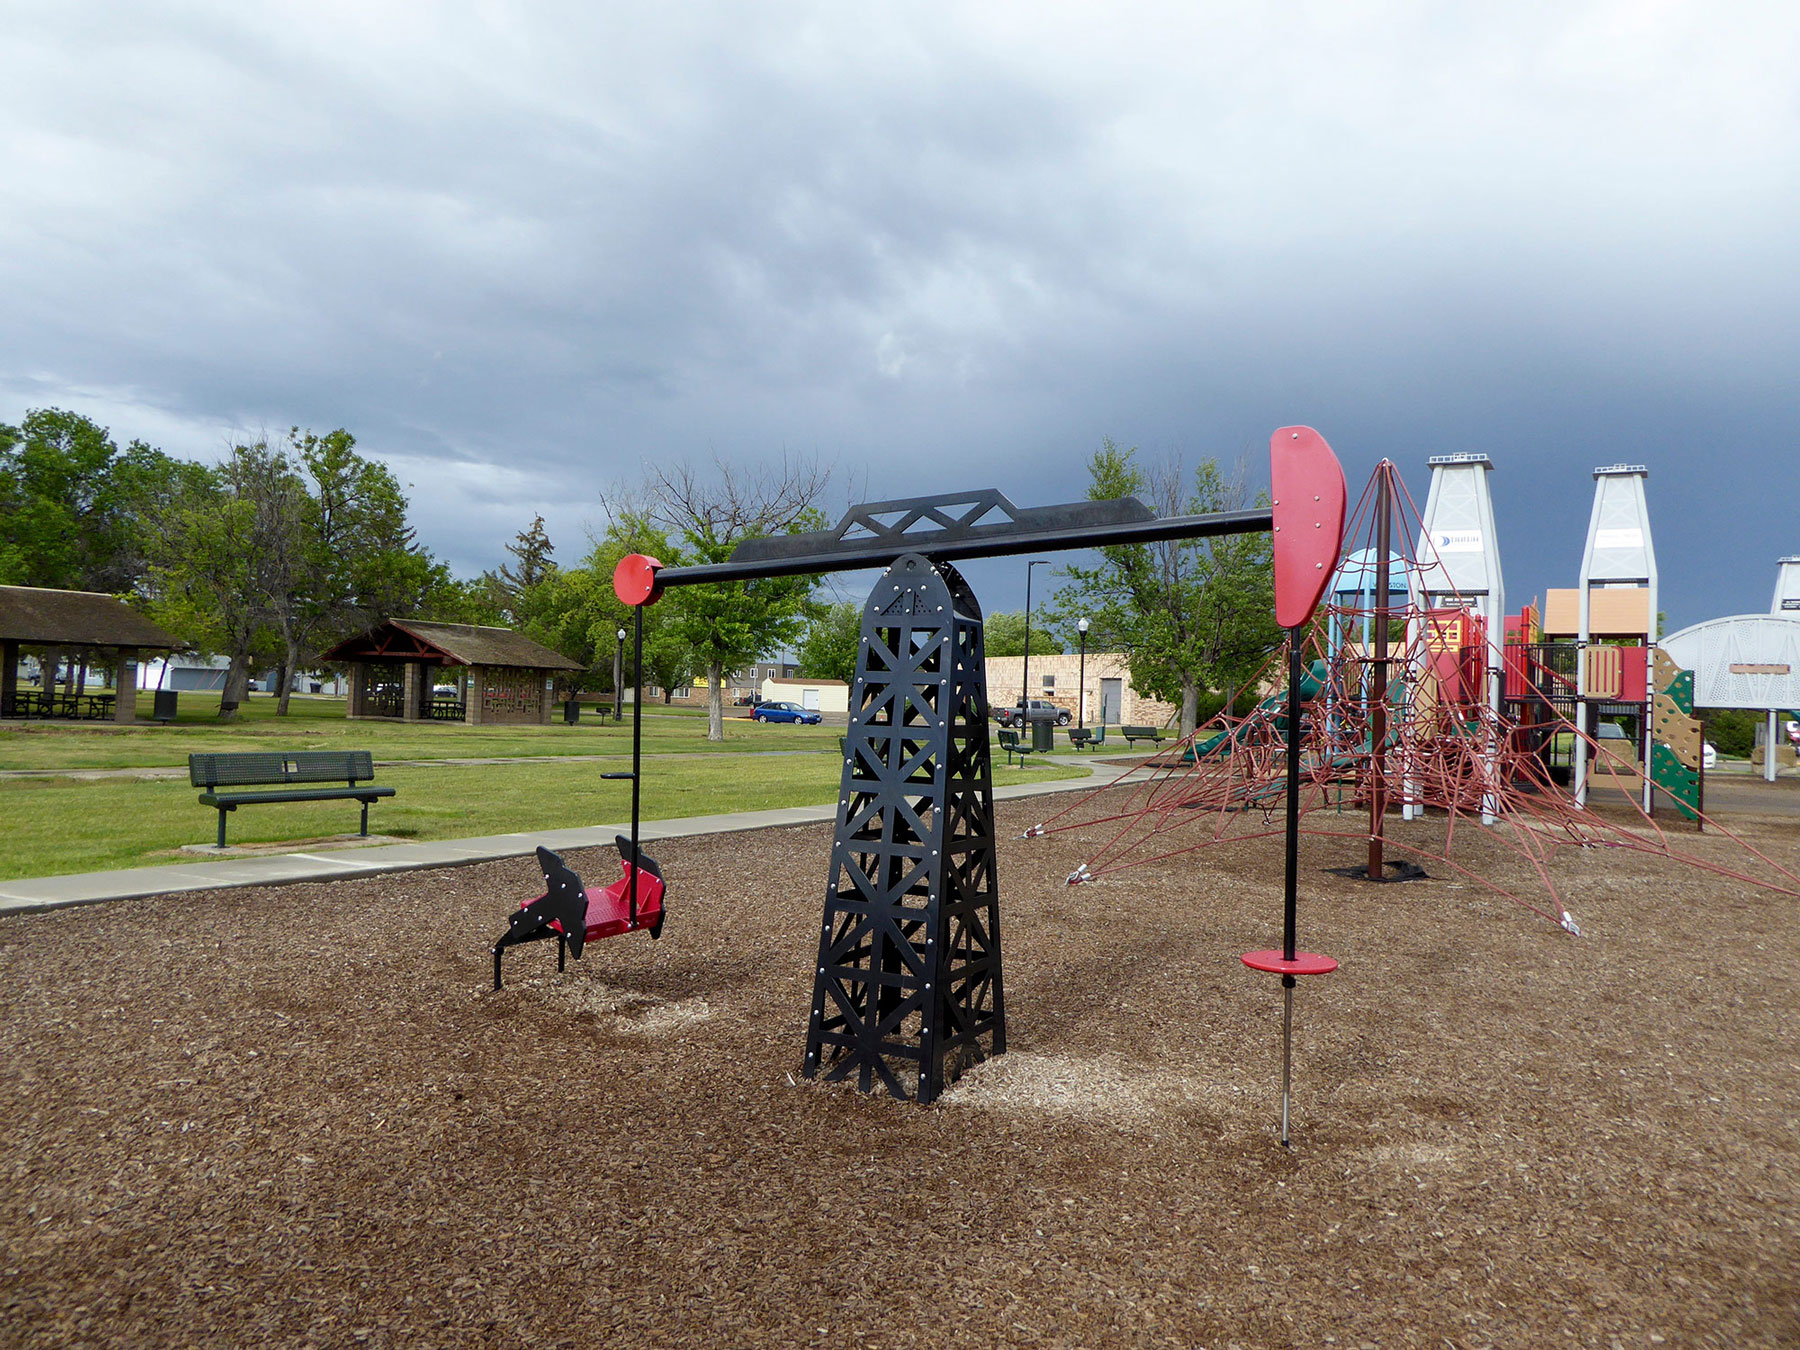 Oil-themed playground. Williston, ND